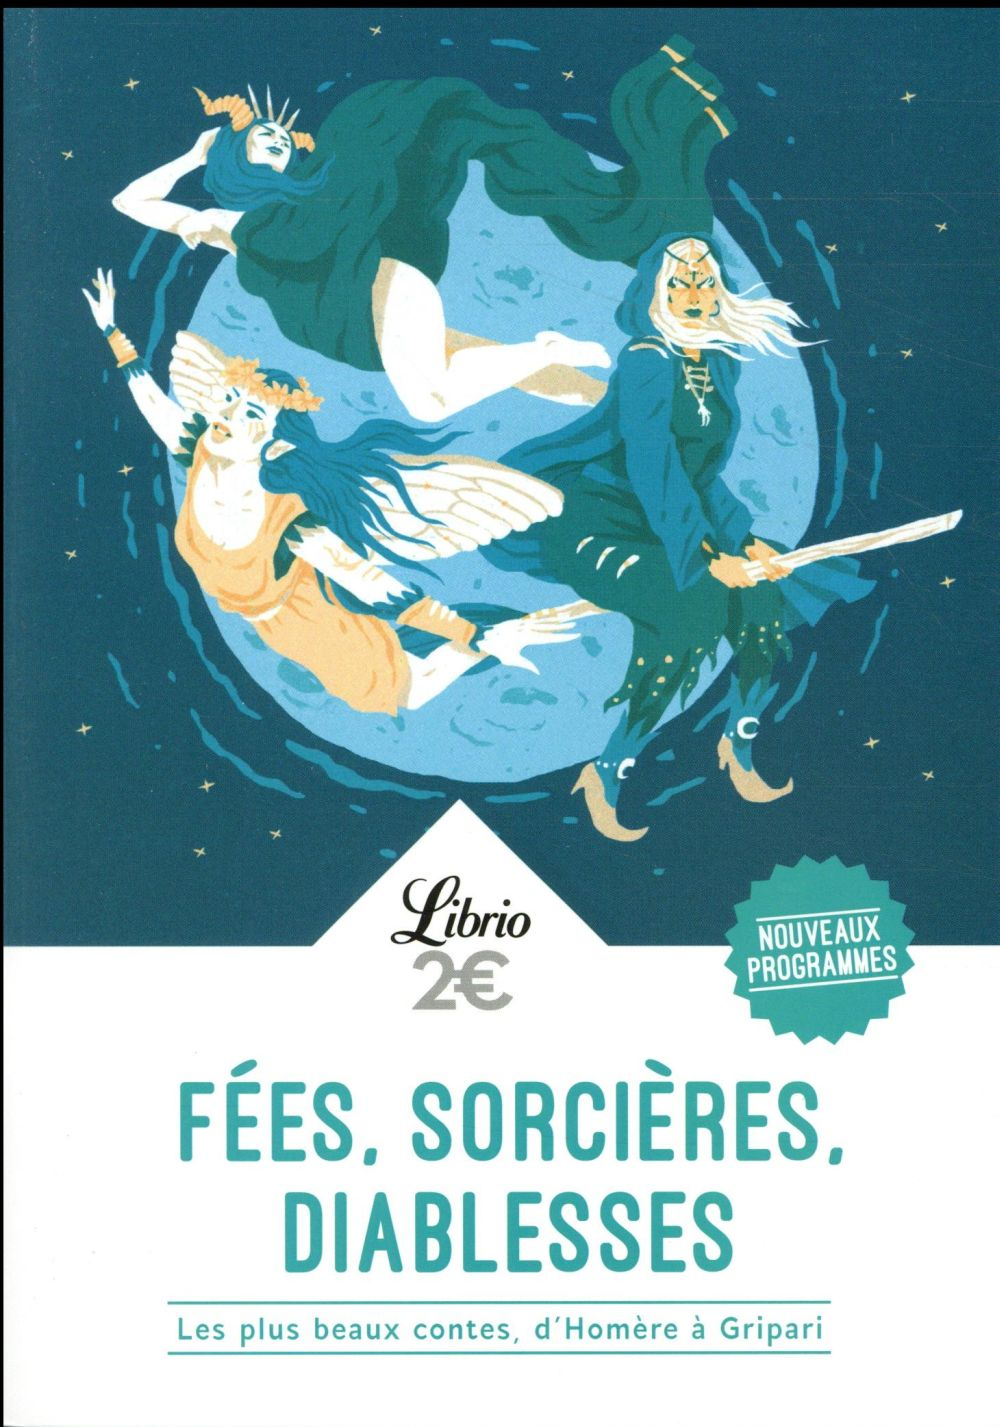 FEES, SORCIERES, DIABLESSES